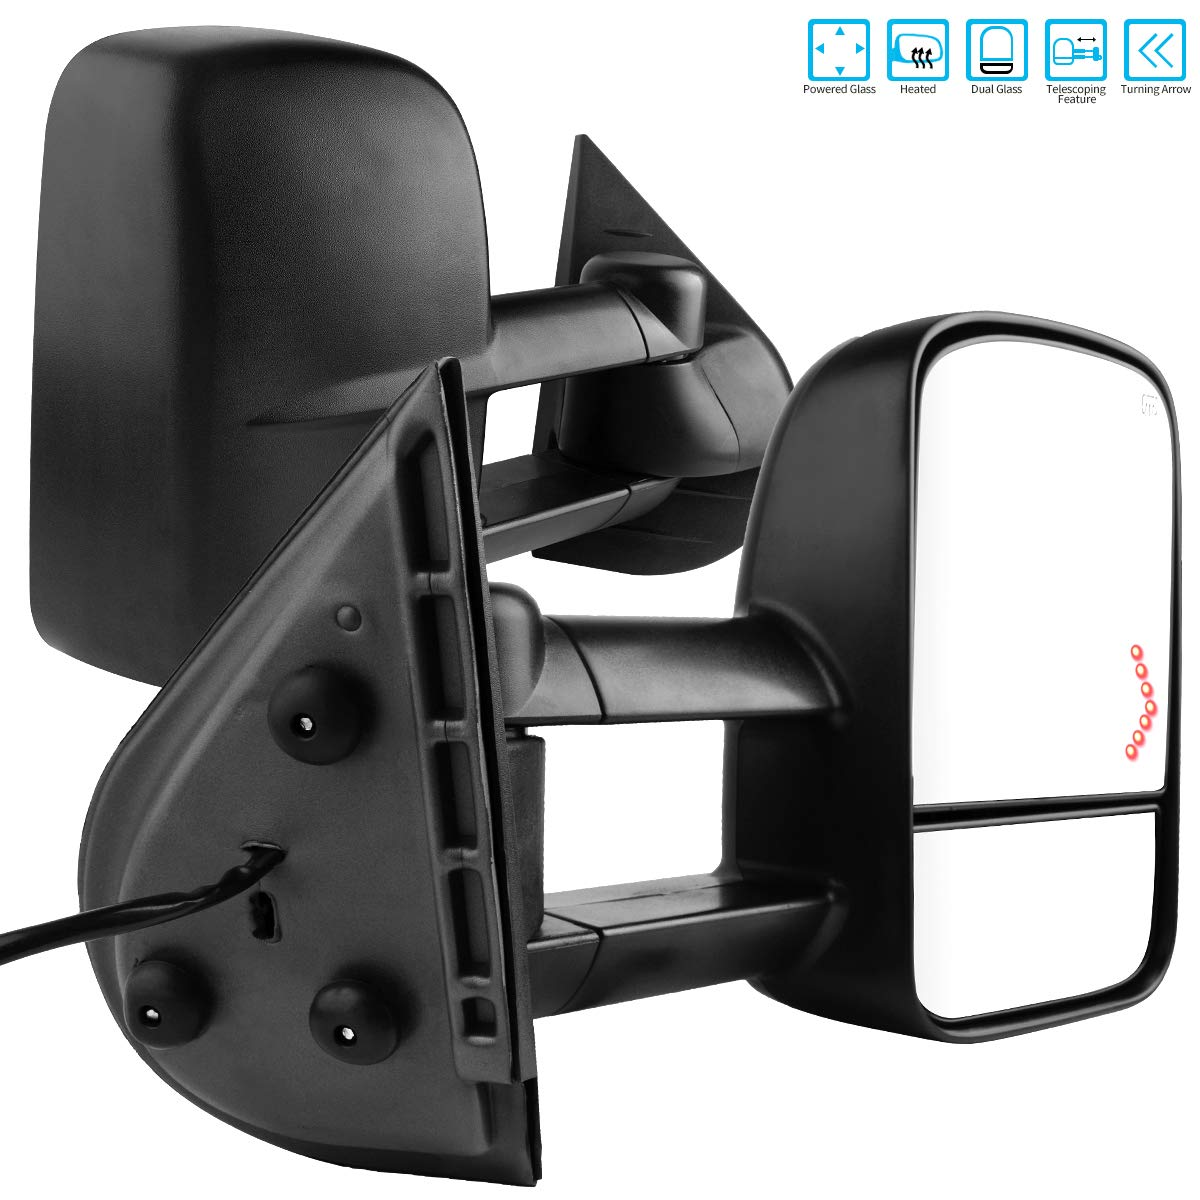 AUTOSAVER88 Tow Mirrors Compatible for 2007-2014 Chevy Silverado GMC Sierra, Power Heated Driver and Passenger Side Replacement Towing Mirror Set with Turn Signal and Dual Glass by AUTOSAVER88